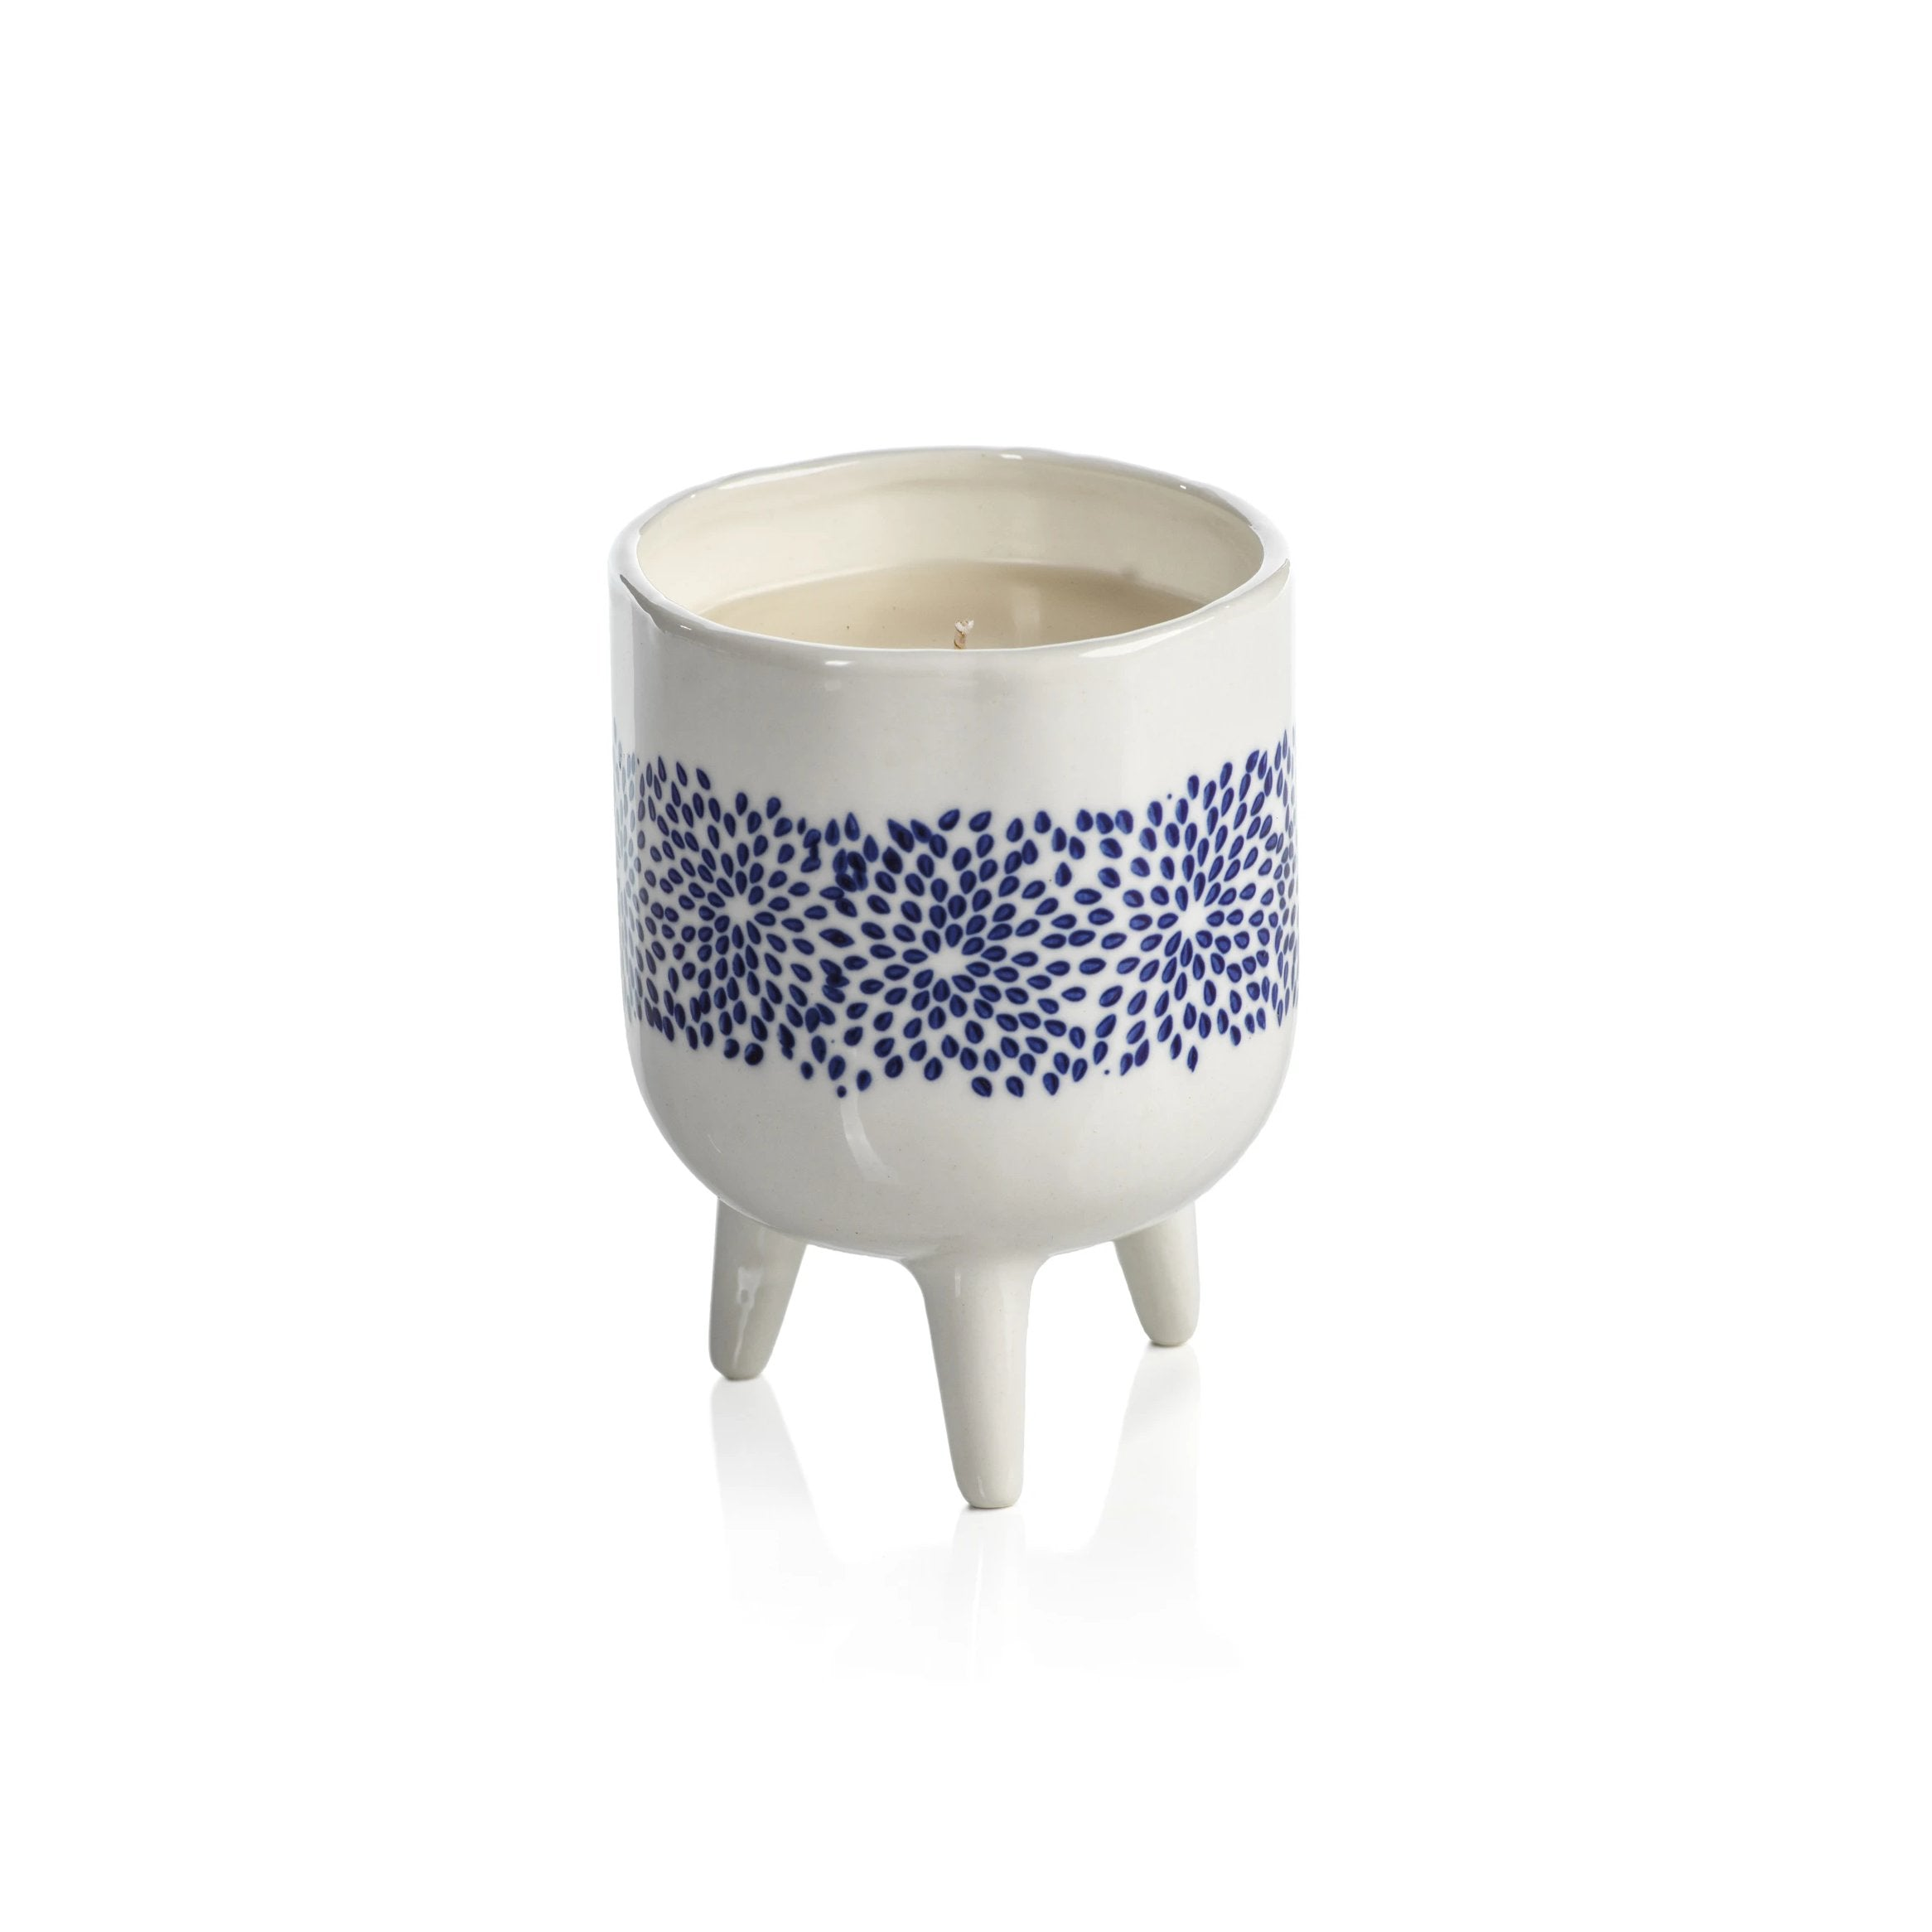 Blue Lagoon Candle - Scattered Floral Dot Pattern - CARLYLE AVENUE